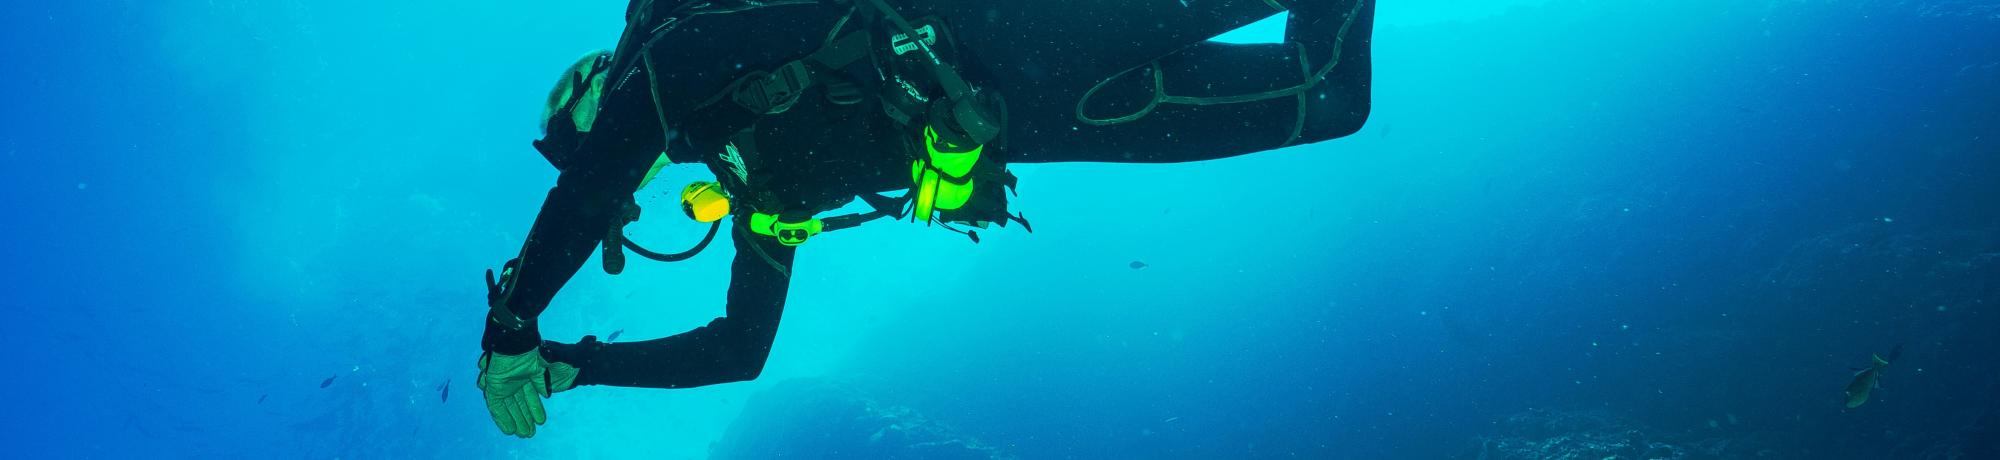 Scuba diver in the open water